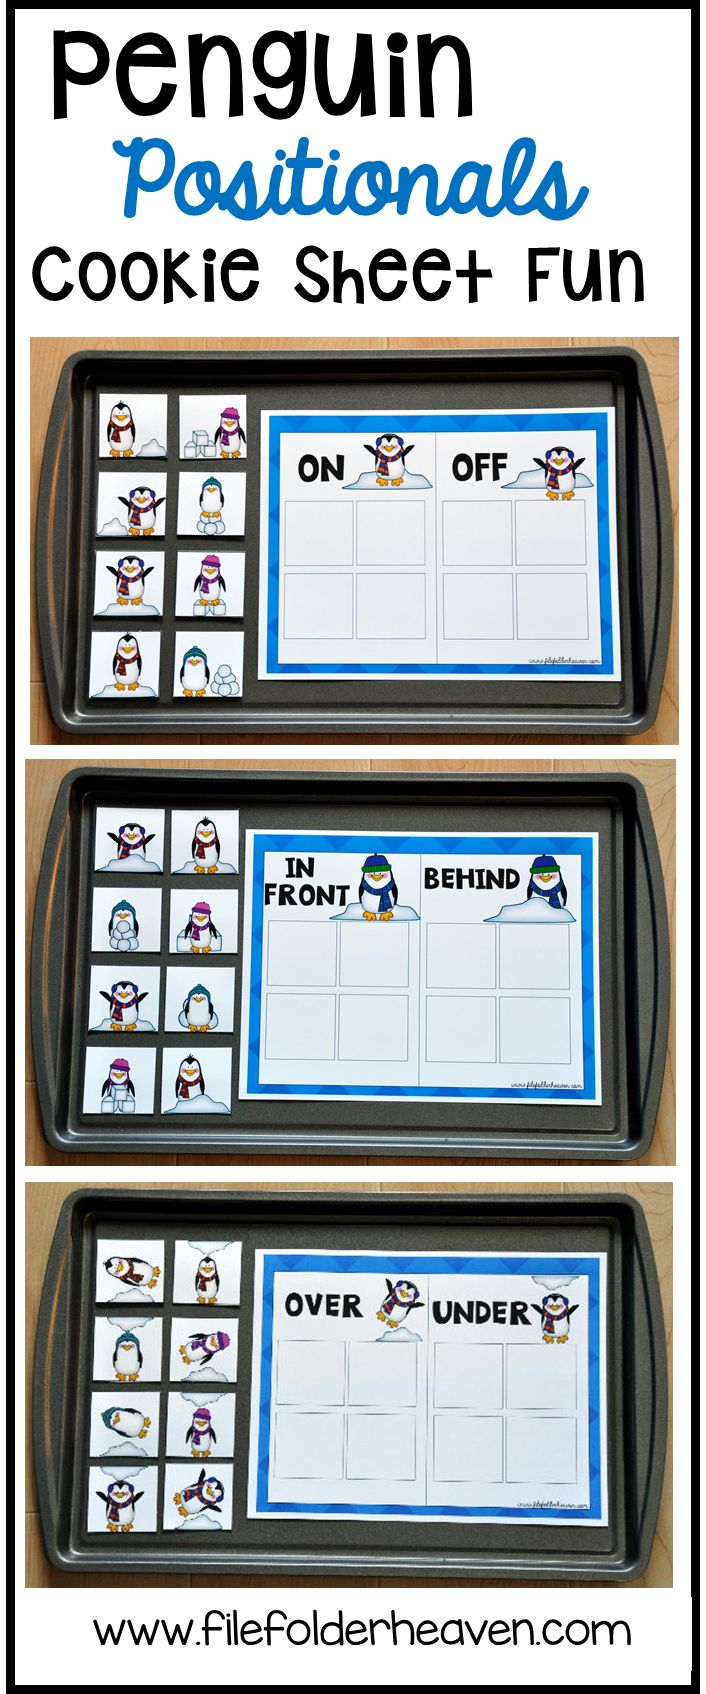 These Penguin Positionals Cookie Sheet Activities include eight unique cookie sheet activities that focus on position words and concepts. In each activity, students sort pictures of penguins into two categories based on their positions.